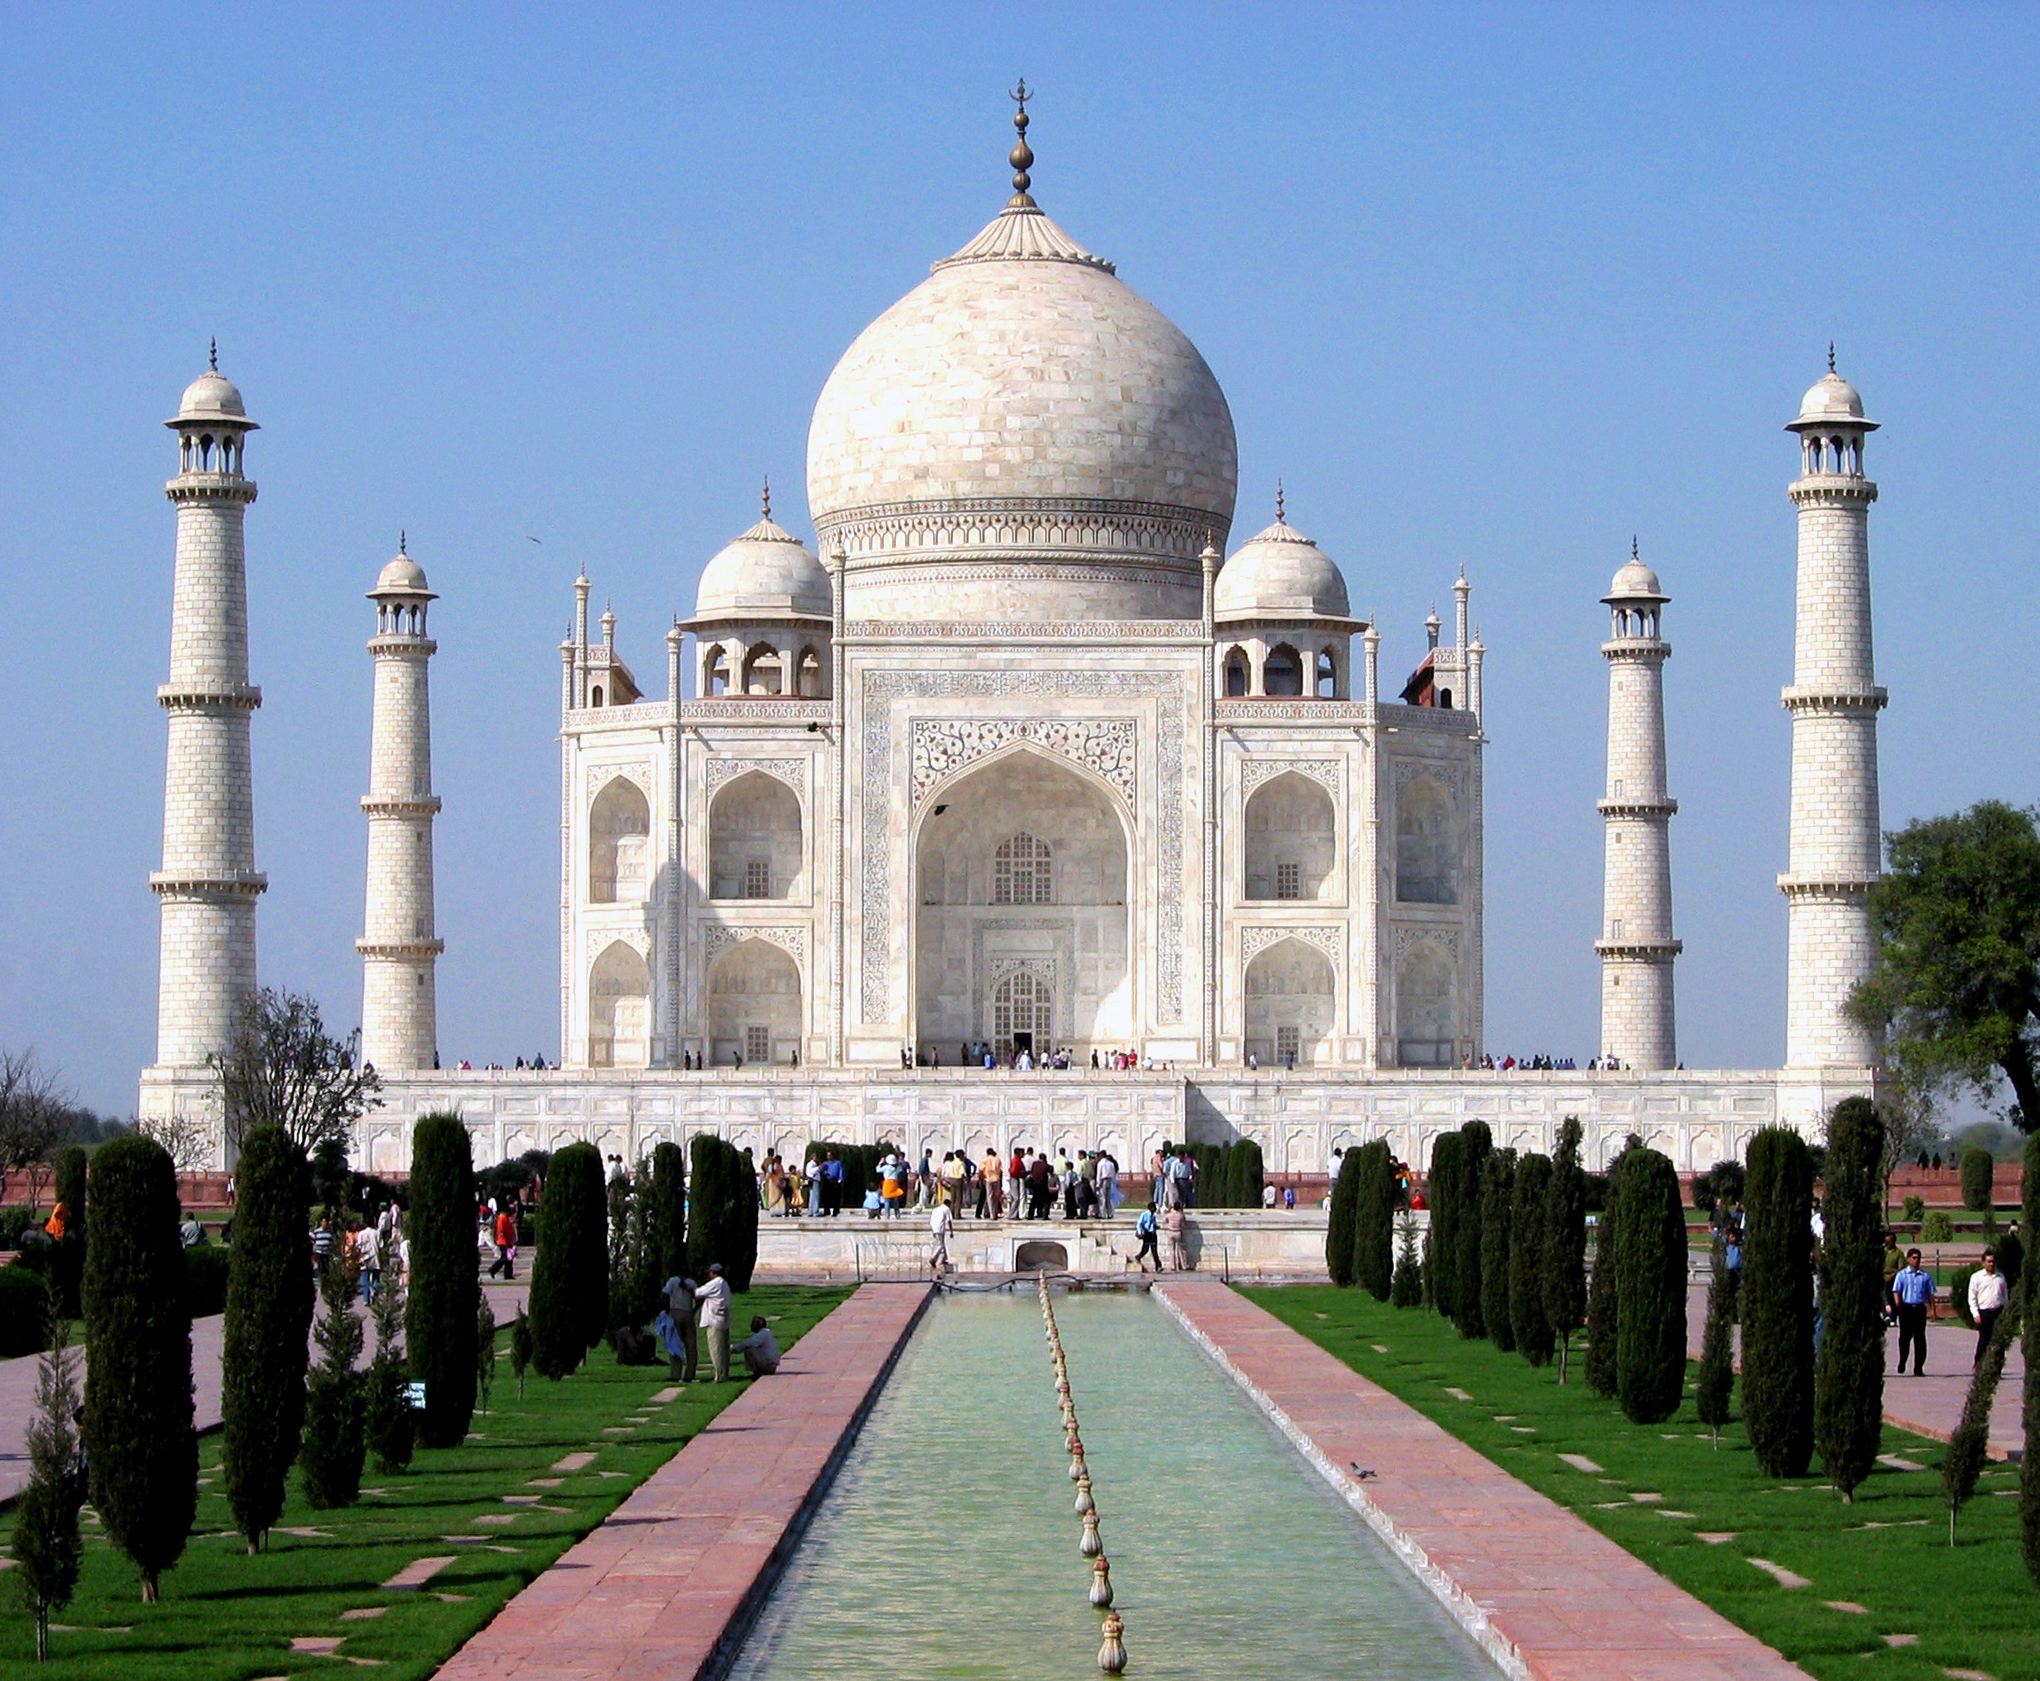 File:Taj Mahal in March 2004.jpg - Wikimedia Commons